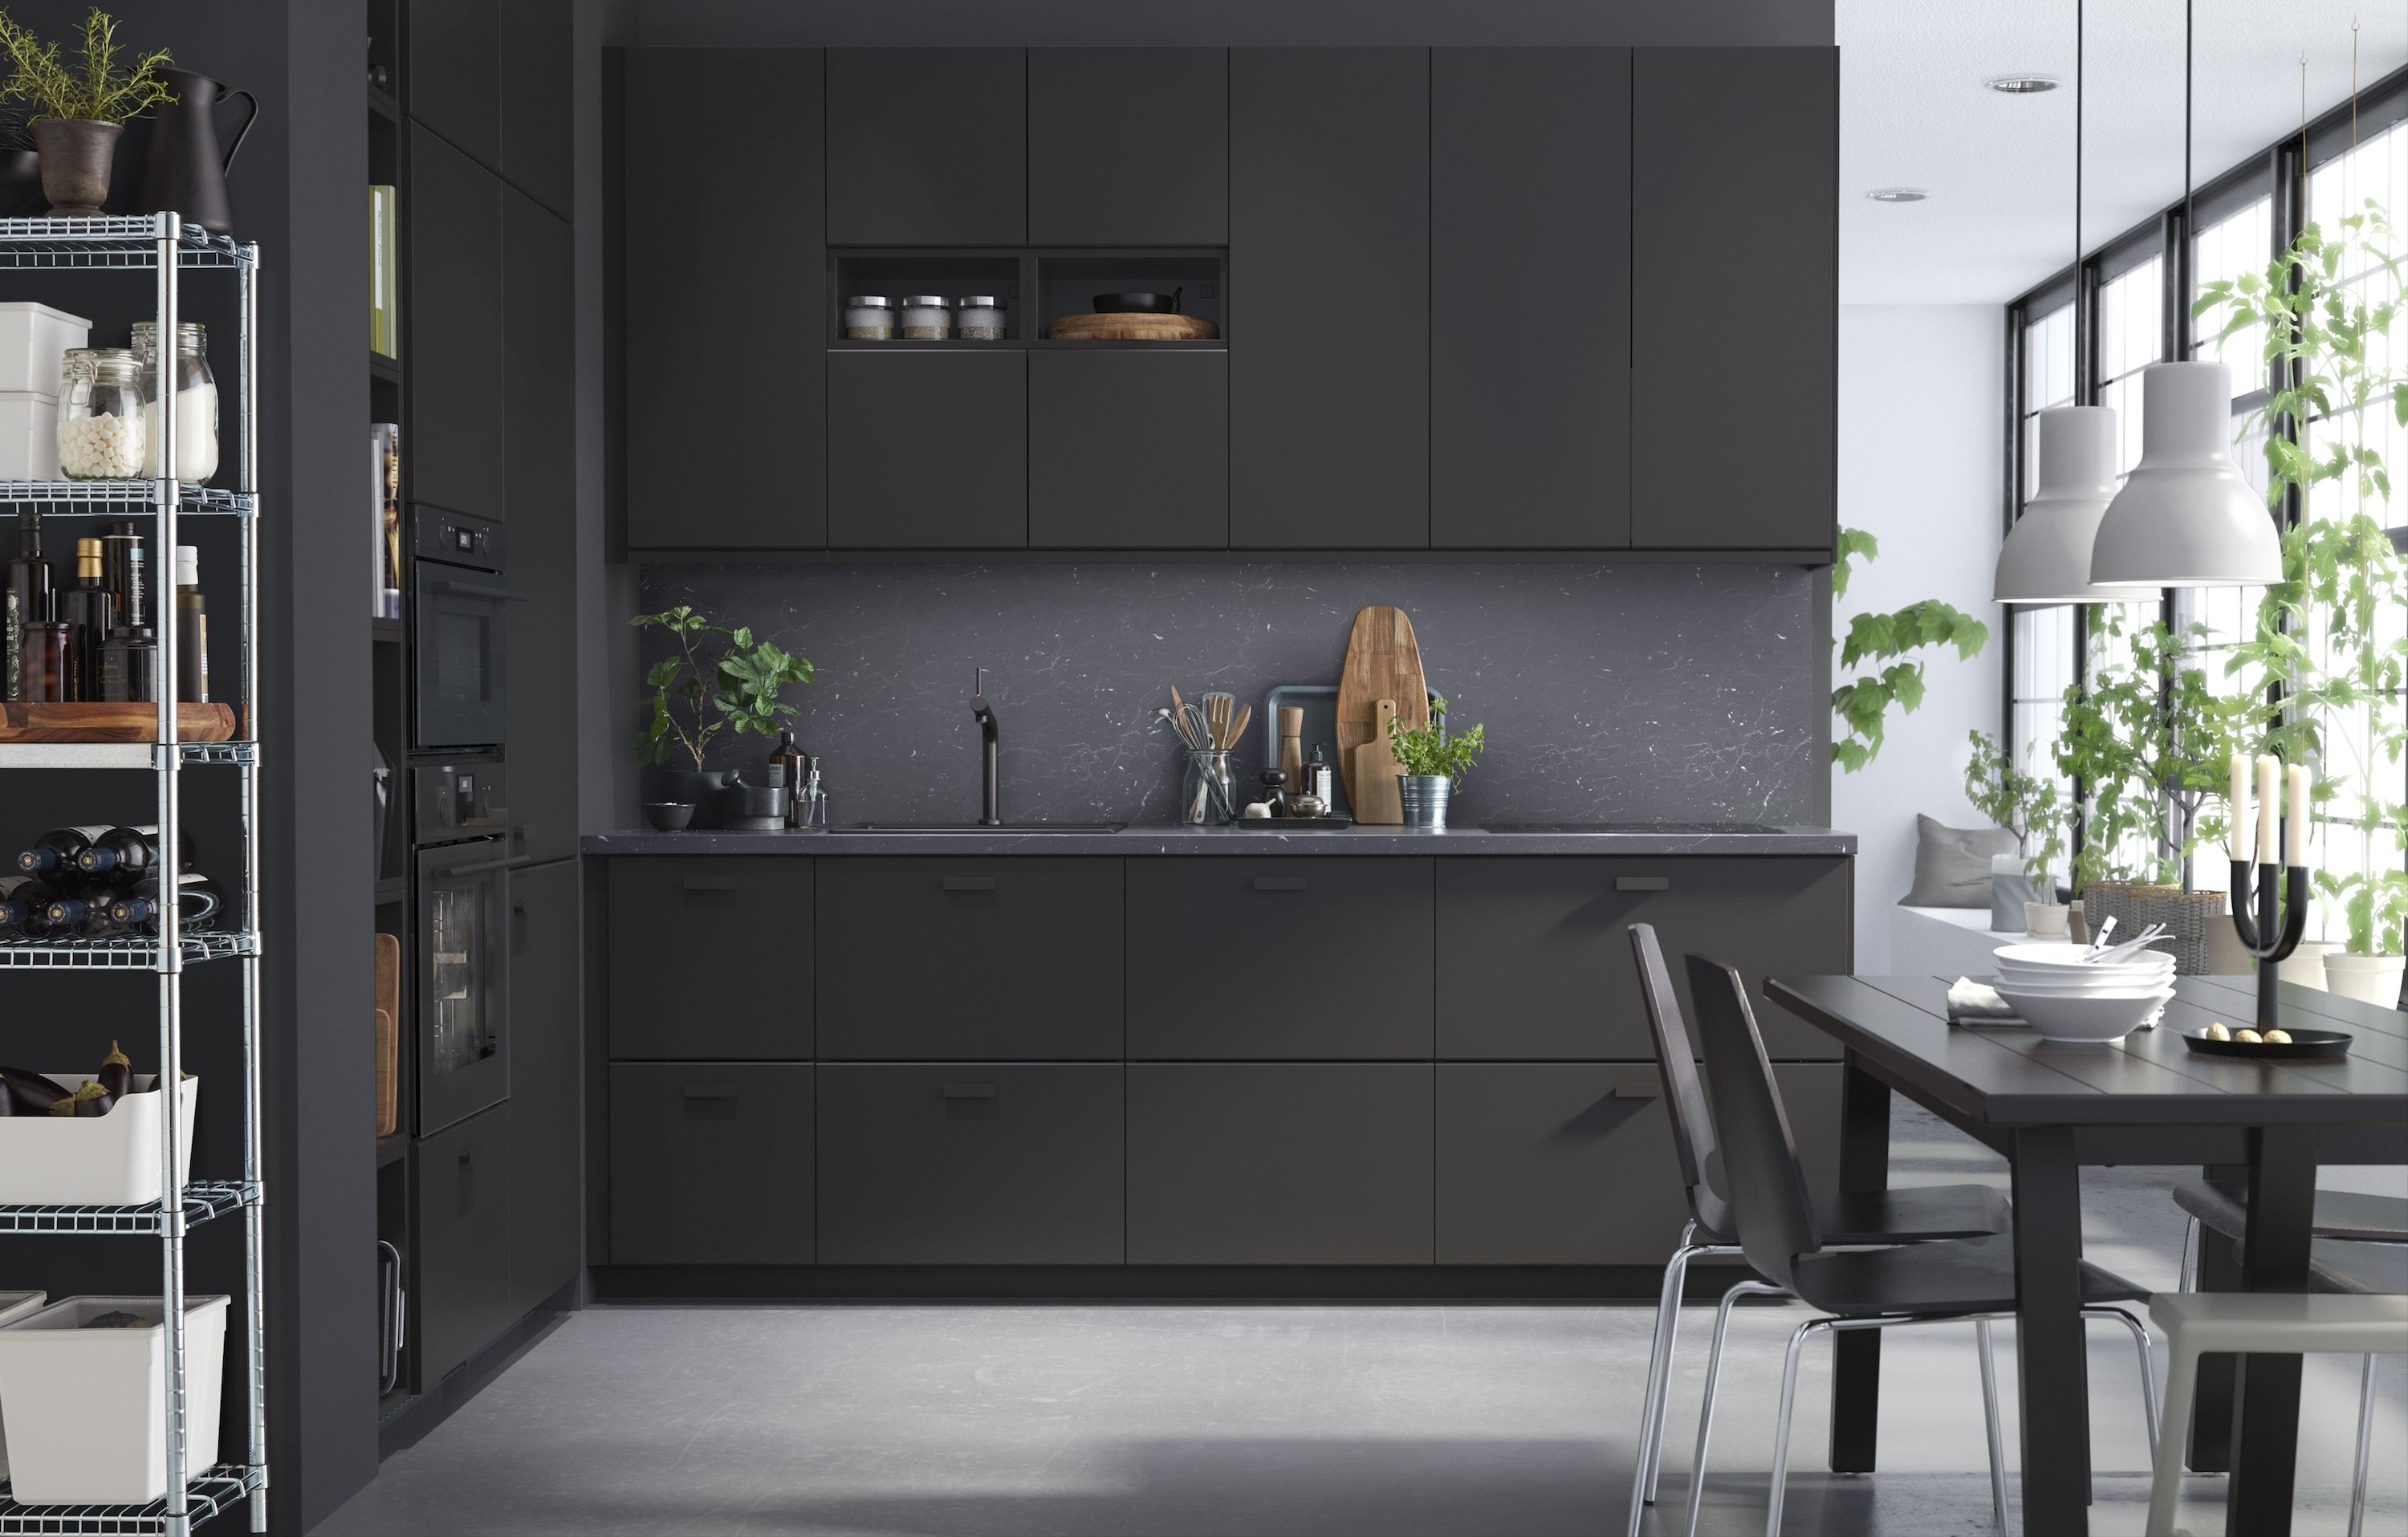 Ikea Kitchen Remodeling Ikea Kitchen Cabinets Made From Recycled Materials Black Ikea